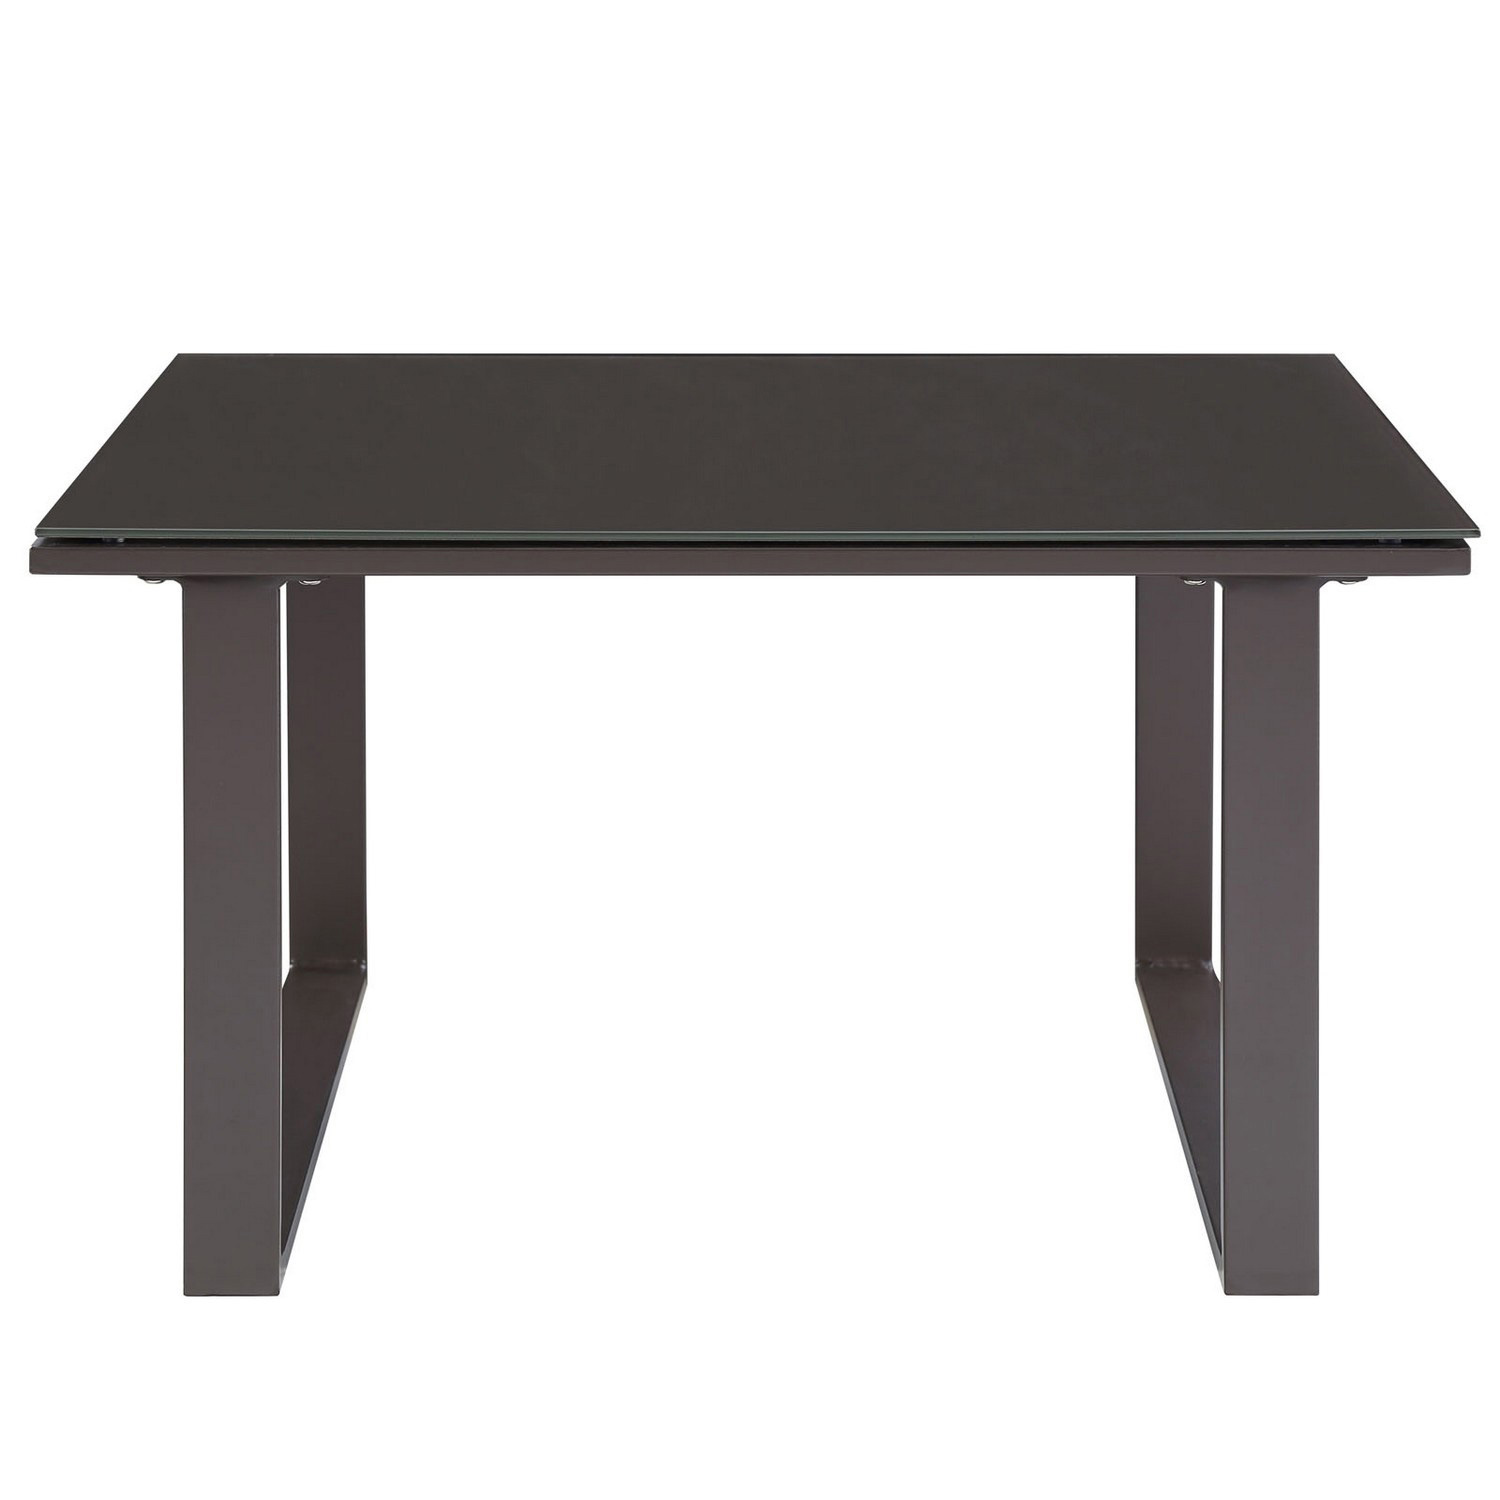 Modway Fortuna Outdoor Patio Side Table - Brown